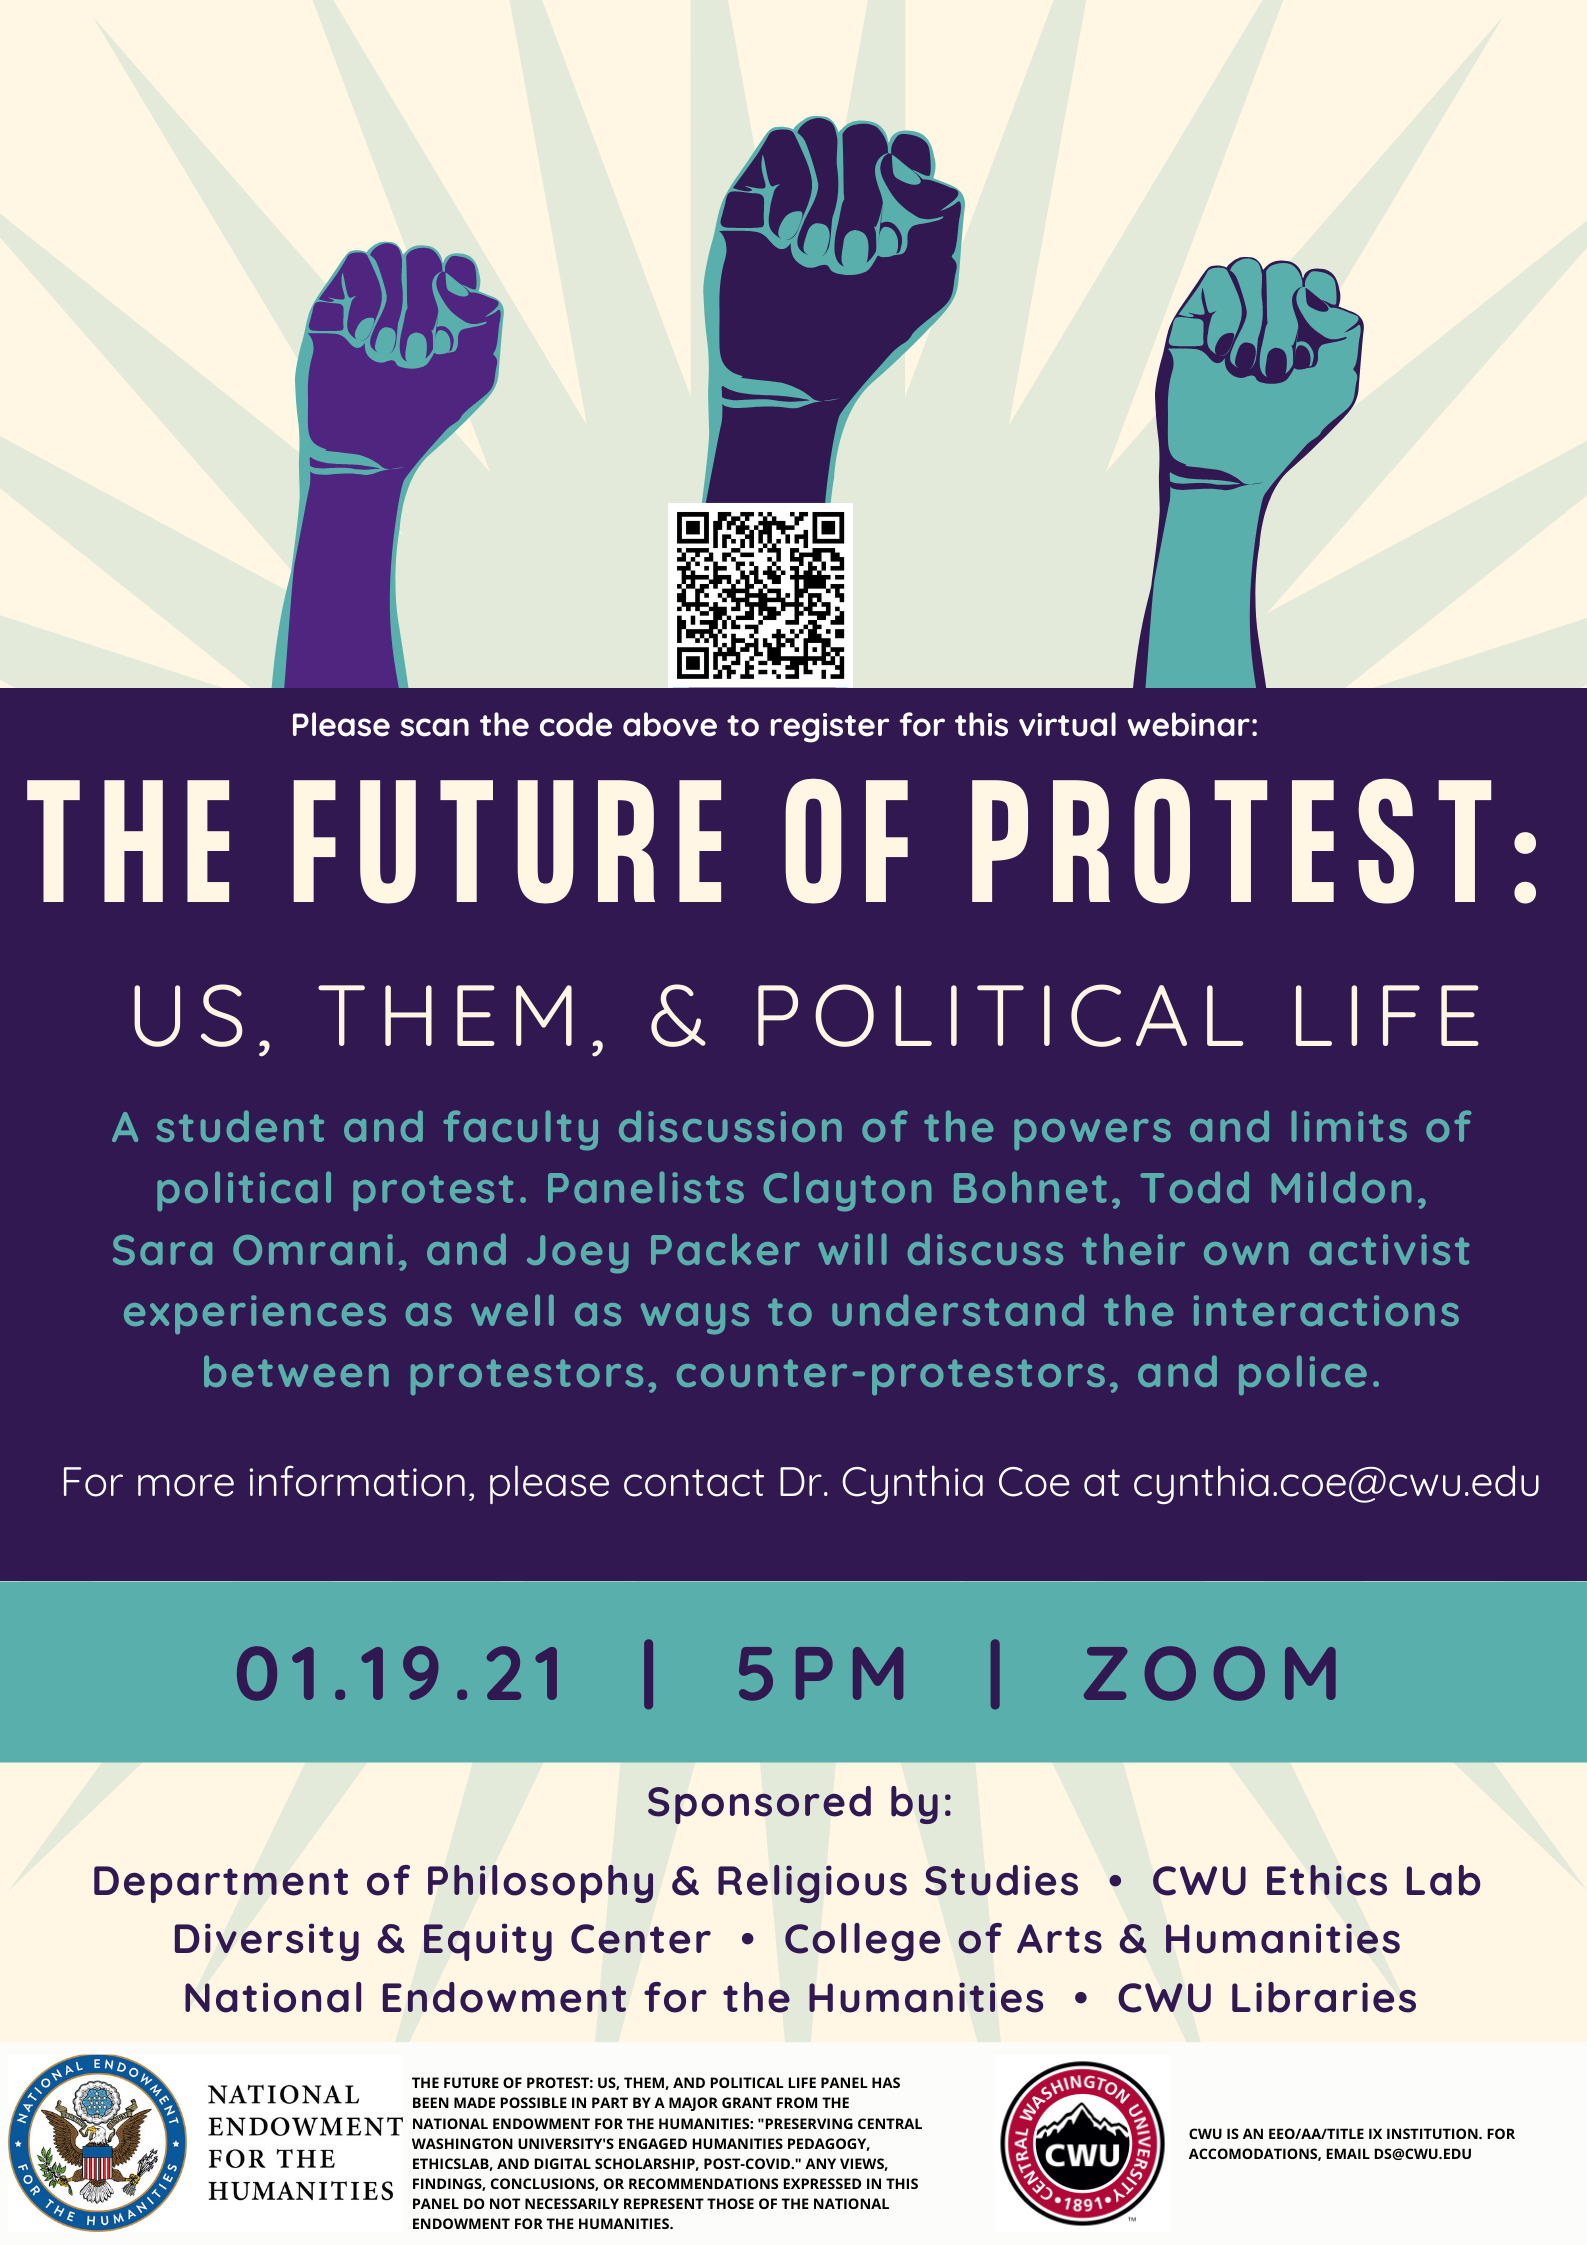 The Future of Protest: Us, Them, and Political Life